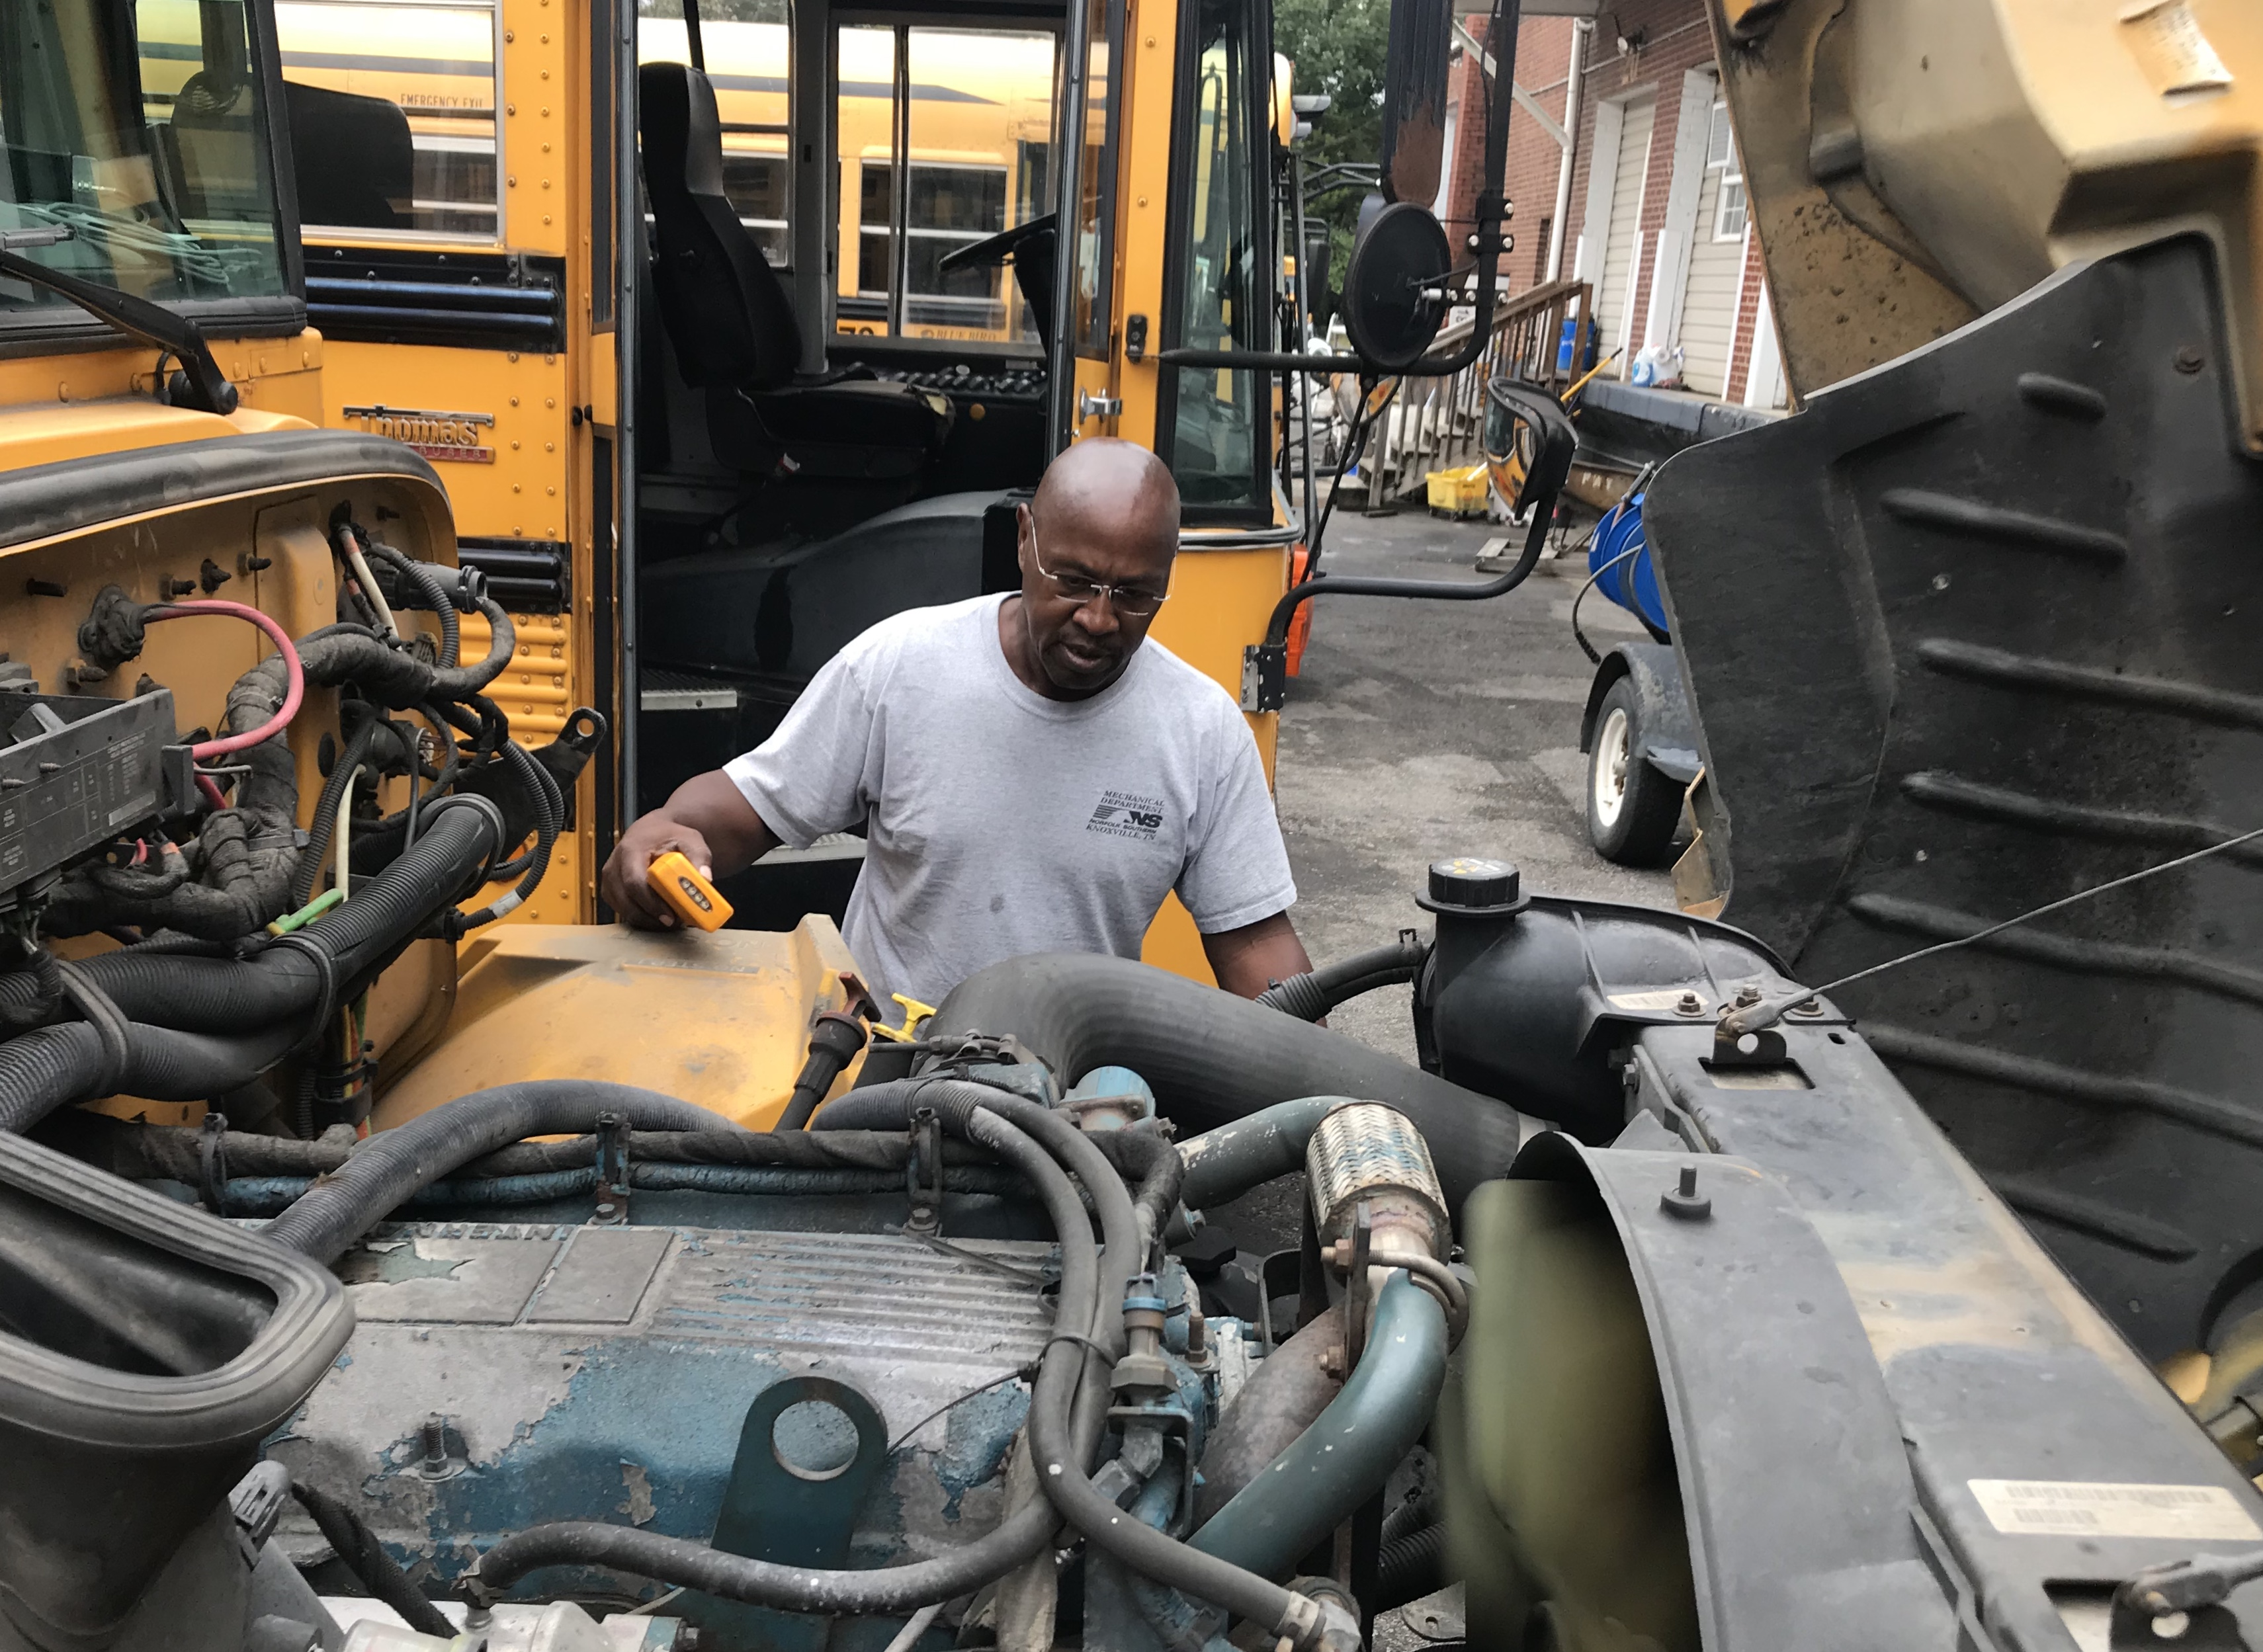 Lynch Bus Lines driver Terry Holloway checks under the hood as part of a standard pre-ride inspection of his school bus.